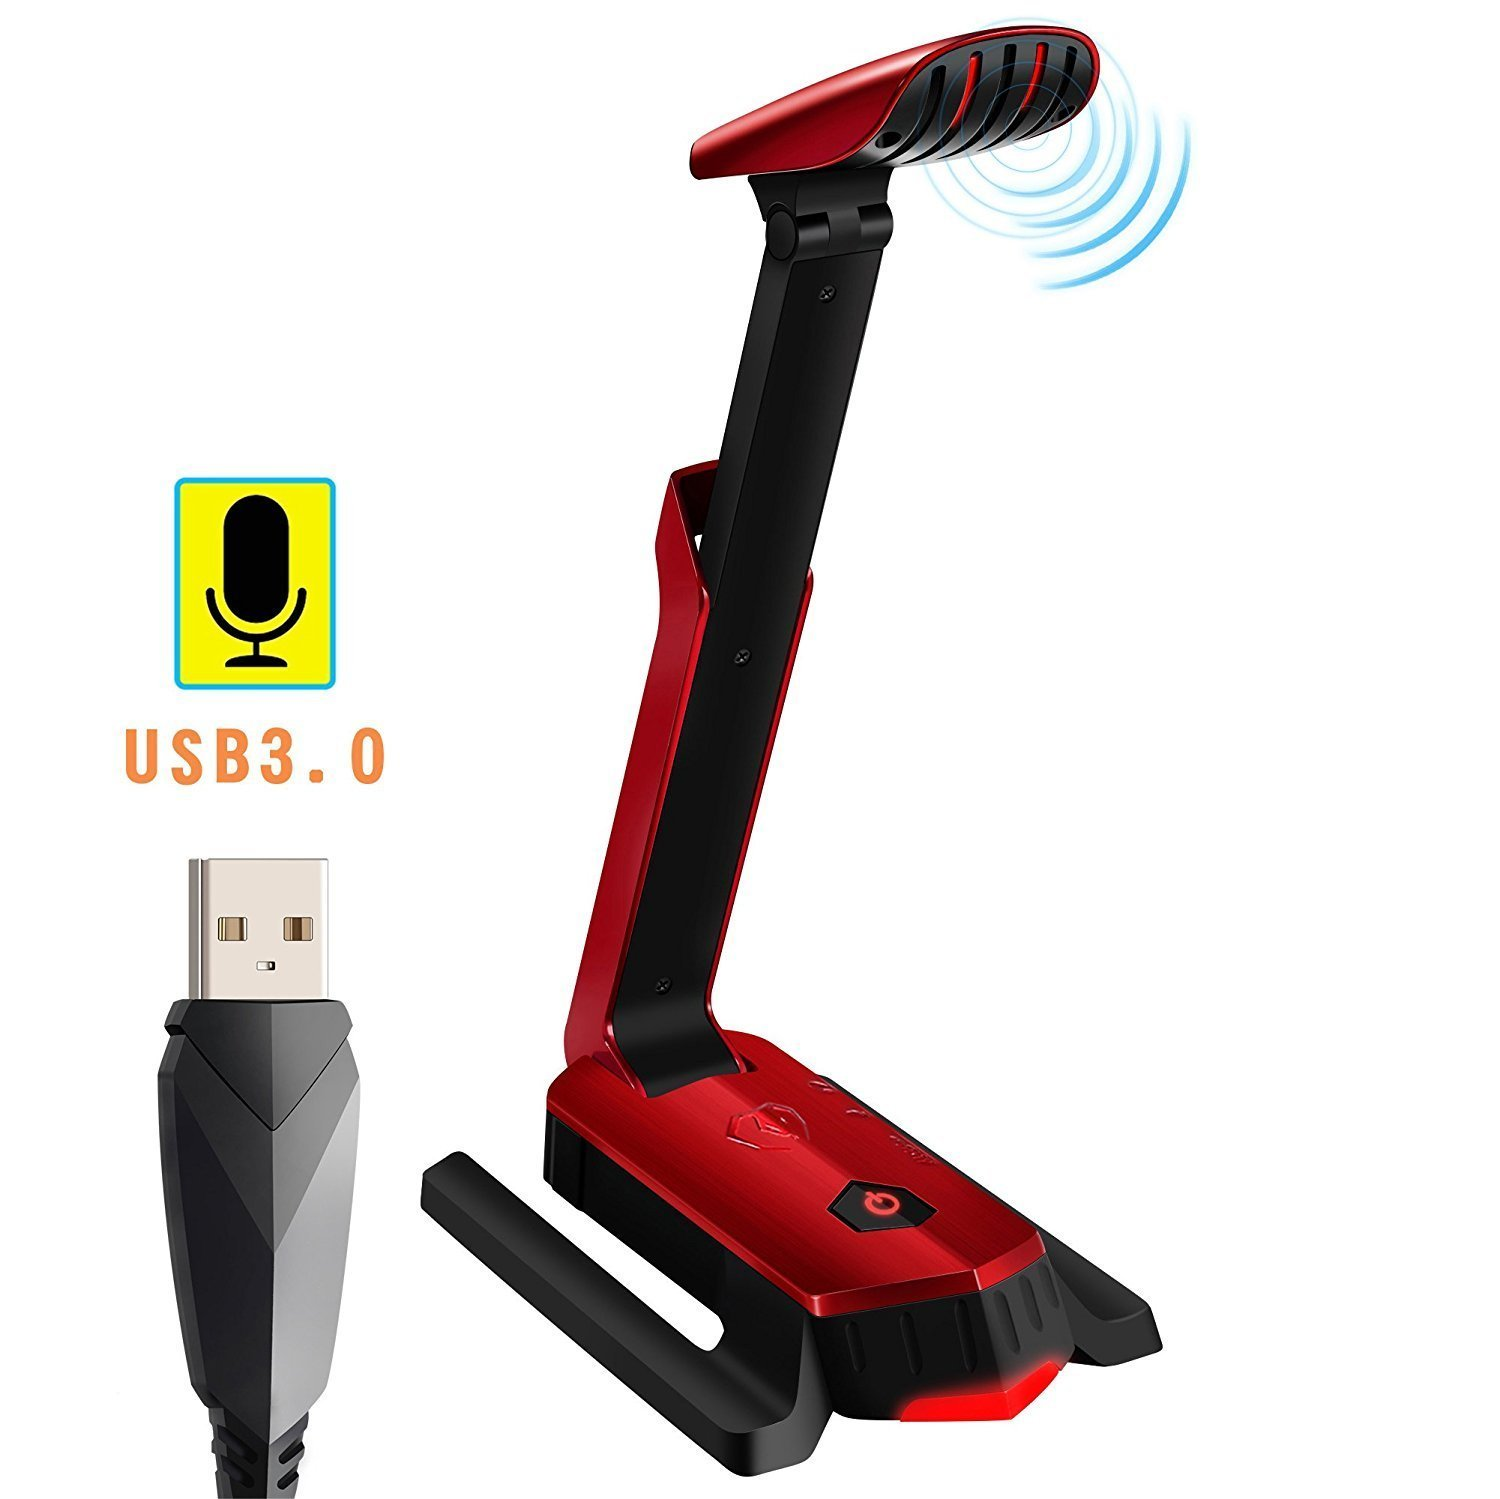 Beexcellent Desktop USB Computer Microphone Flexible for PC, Laptop, PS4, Gaming, Chatting, Meeting, Podcast, Recording (Red) GM-290